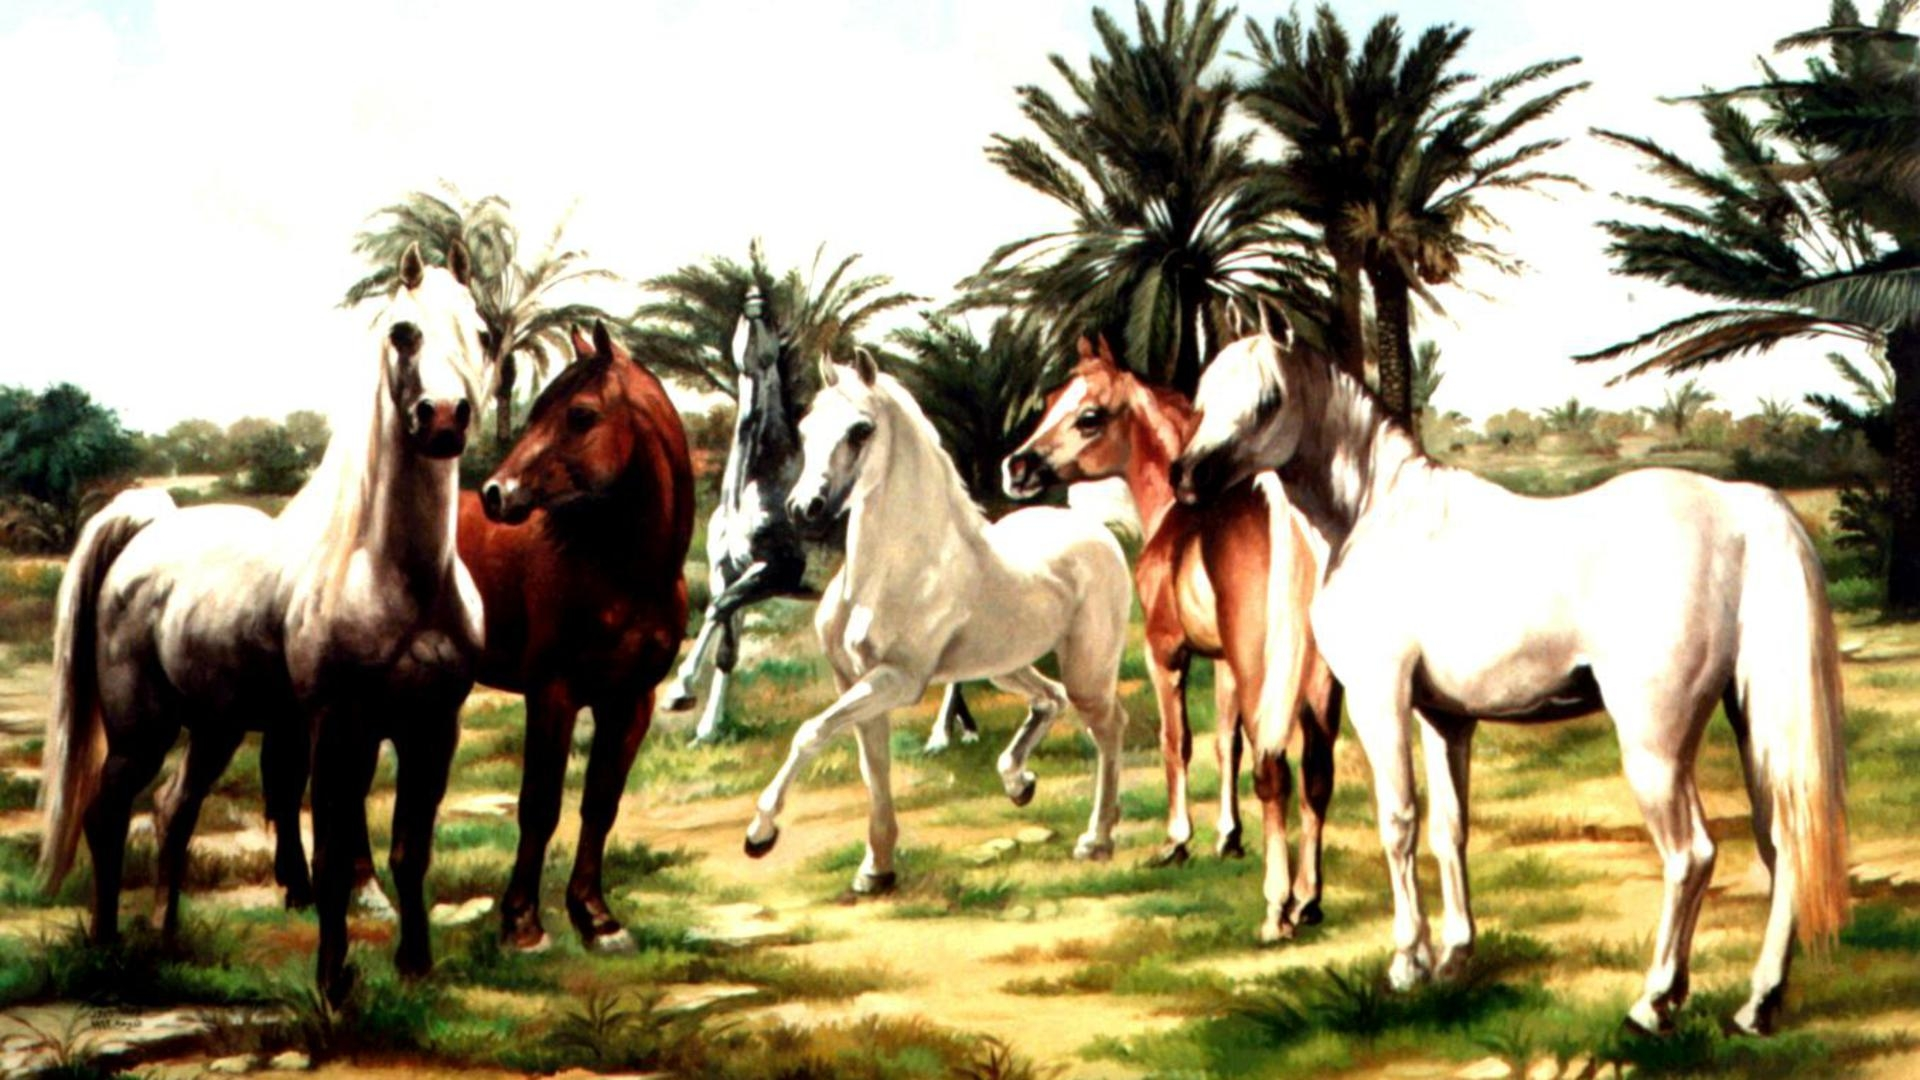 Horse Herd wallpaper